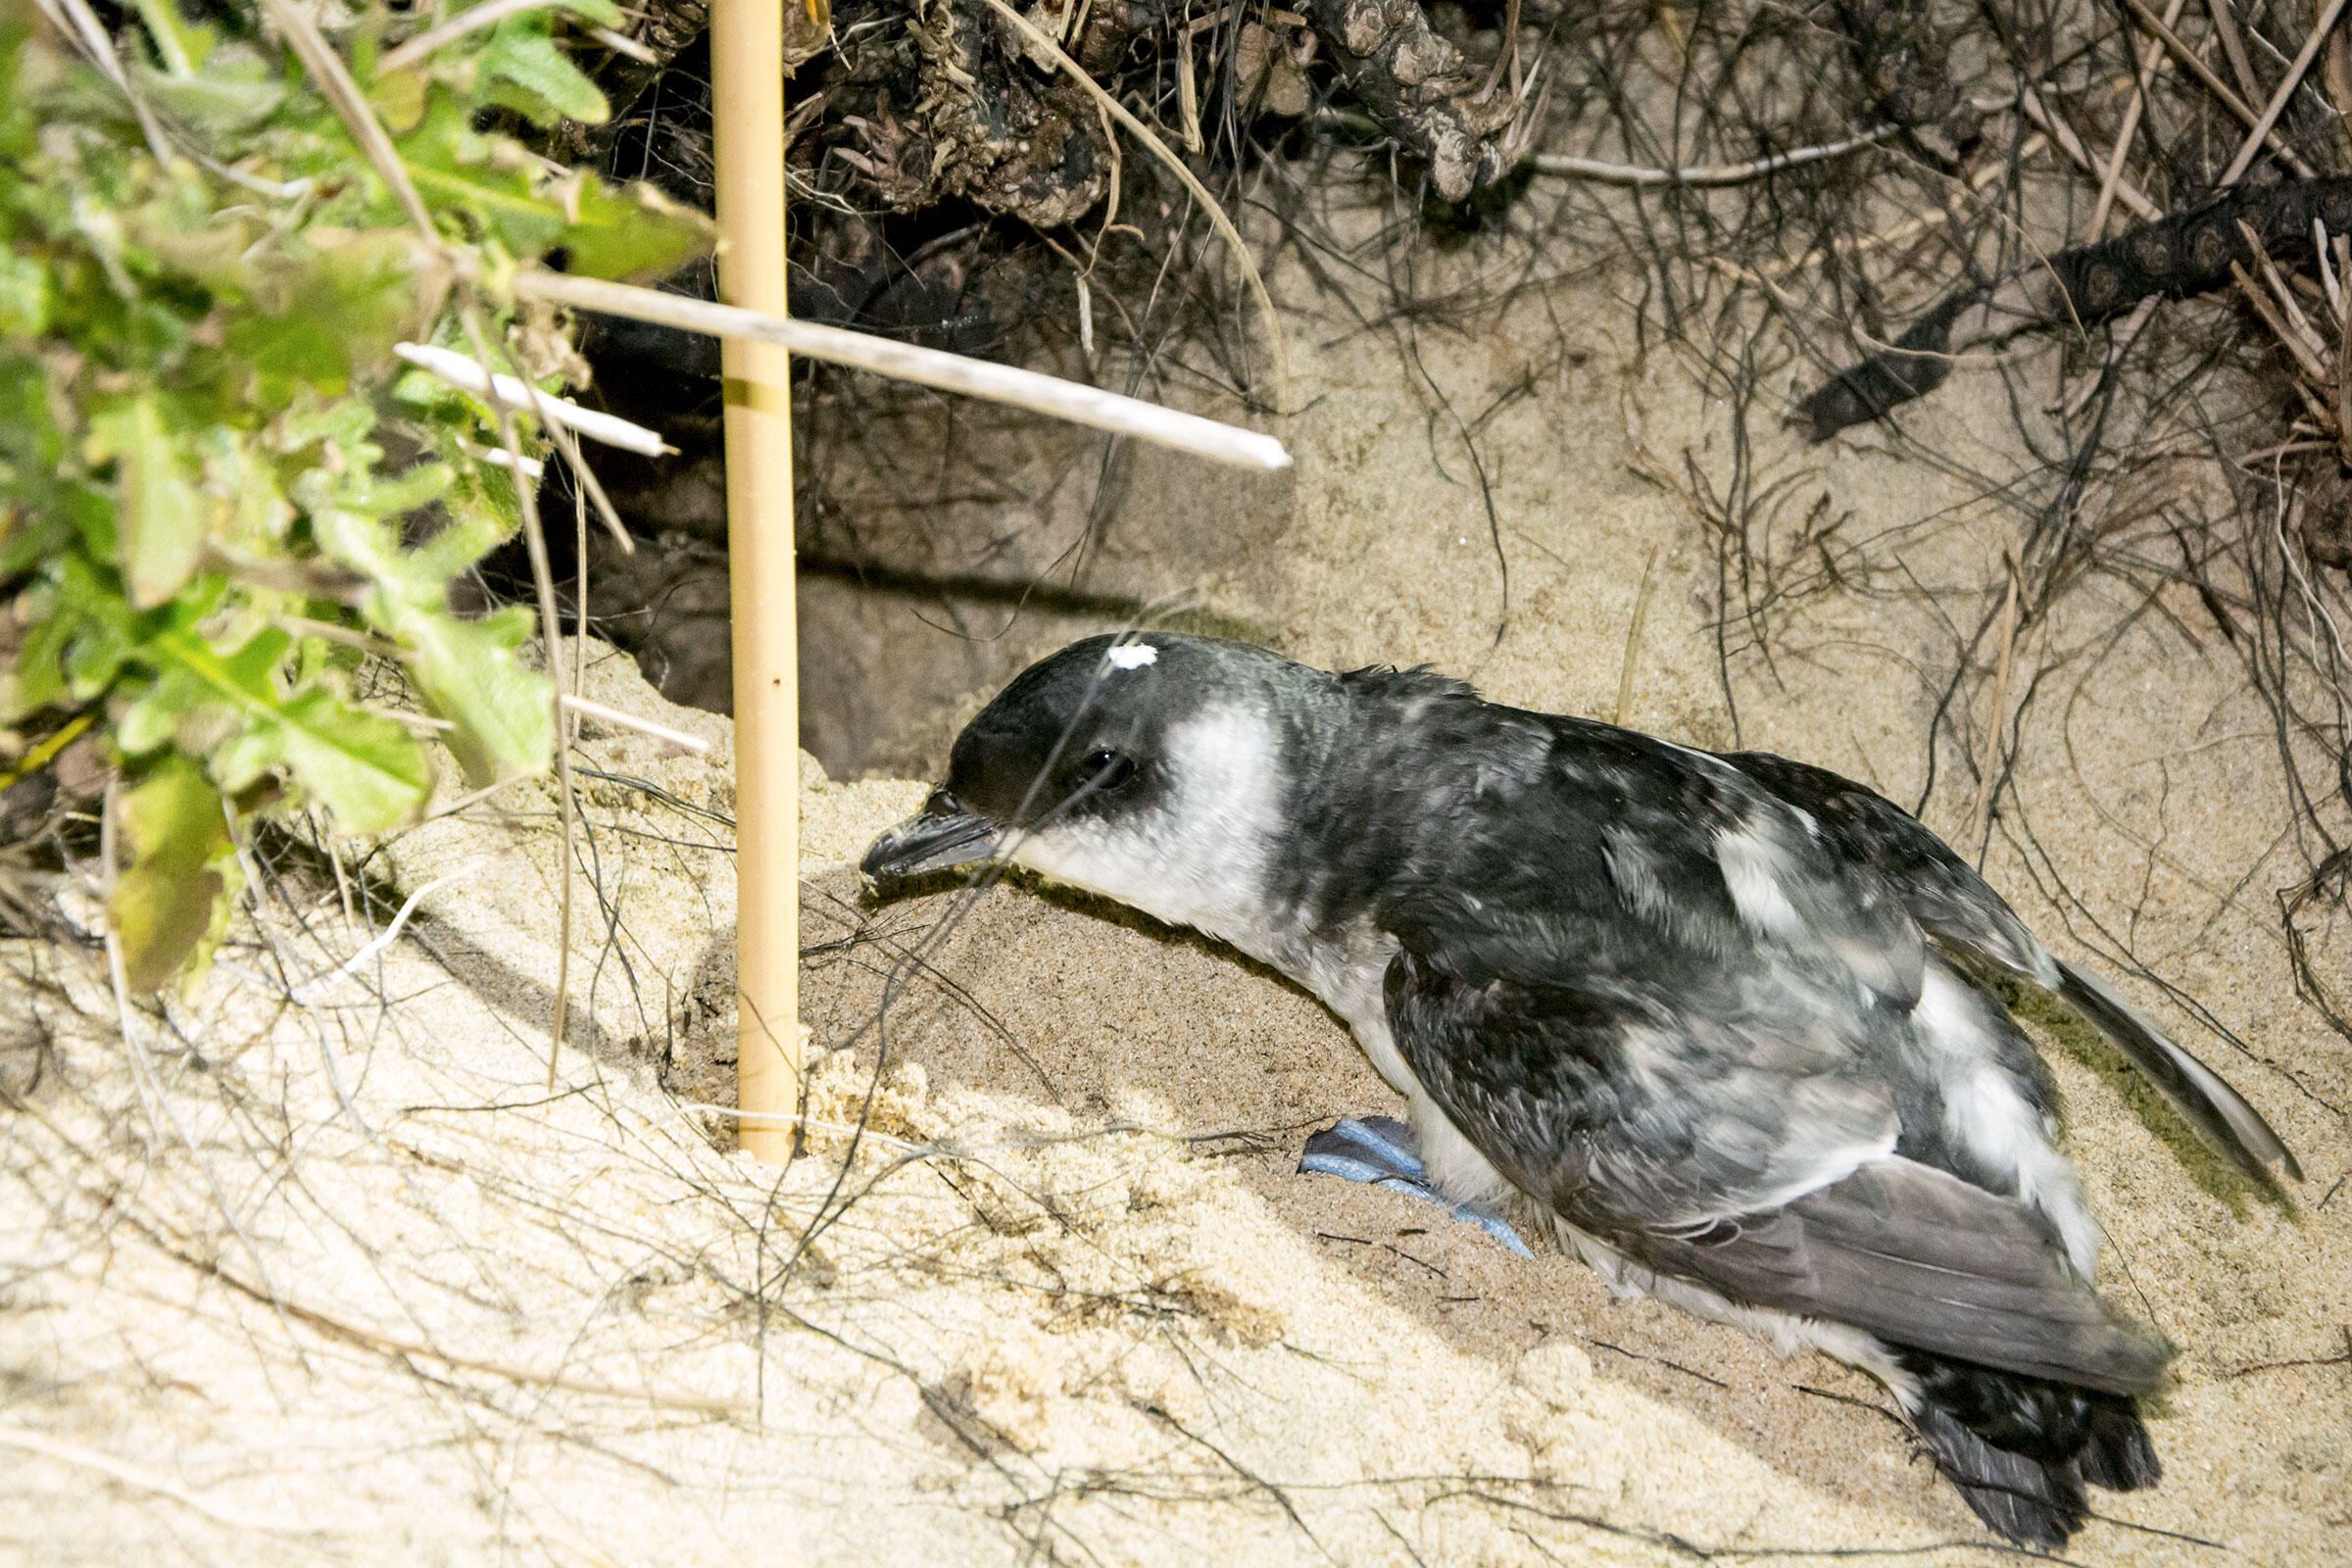 A Whenua Hou Diving-Petrel takes a final look at the great outdoors before retreating into its burrow. Jake Osborne